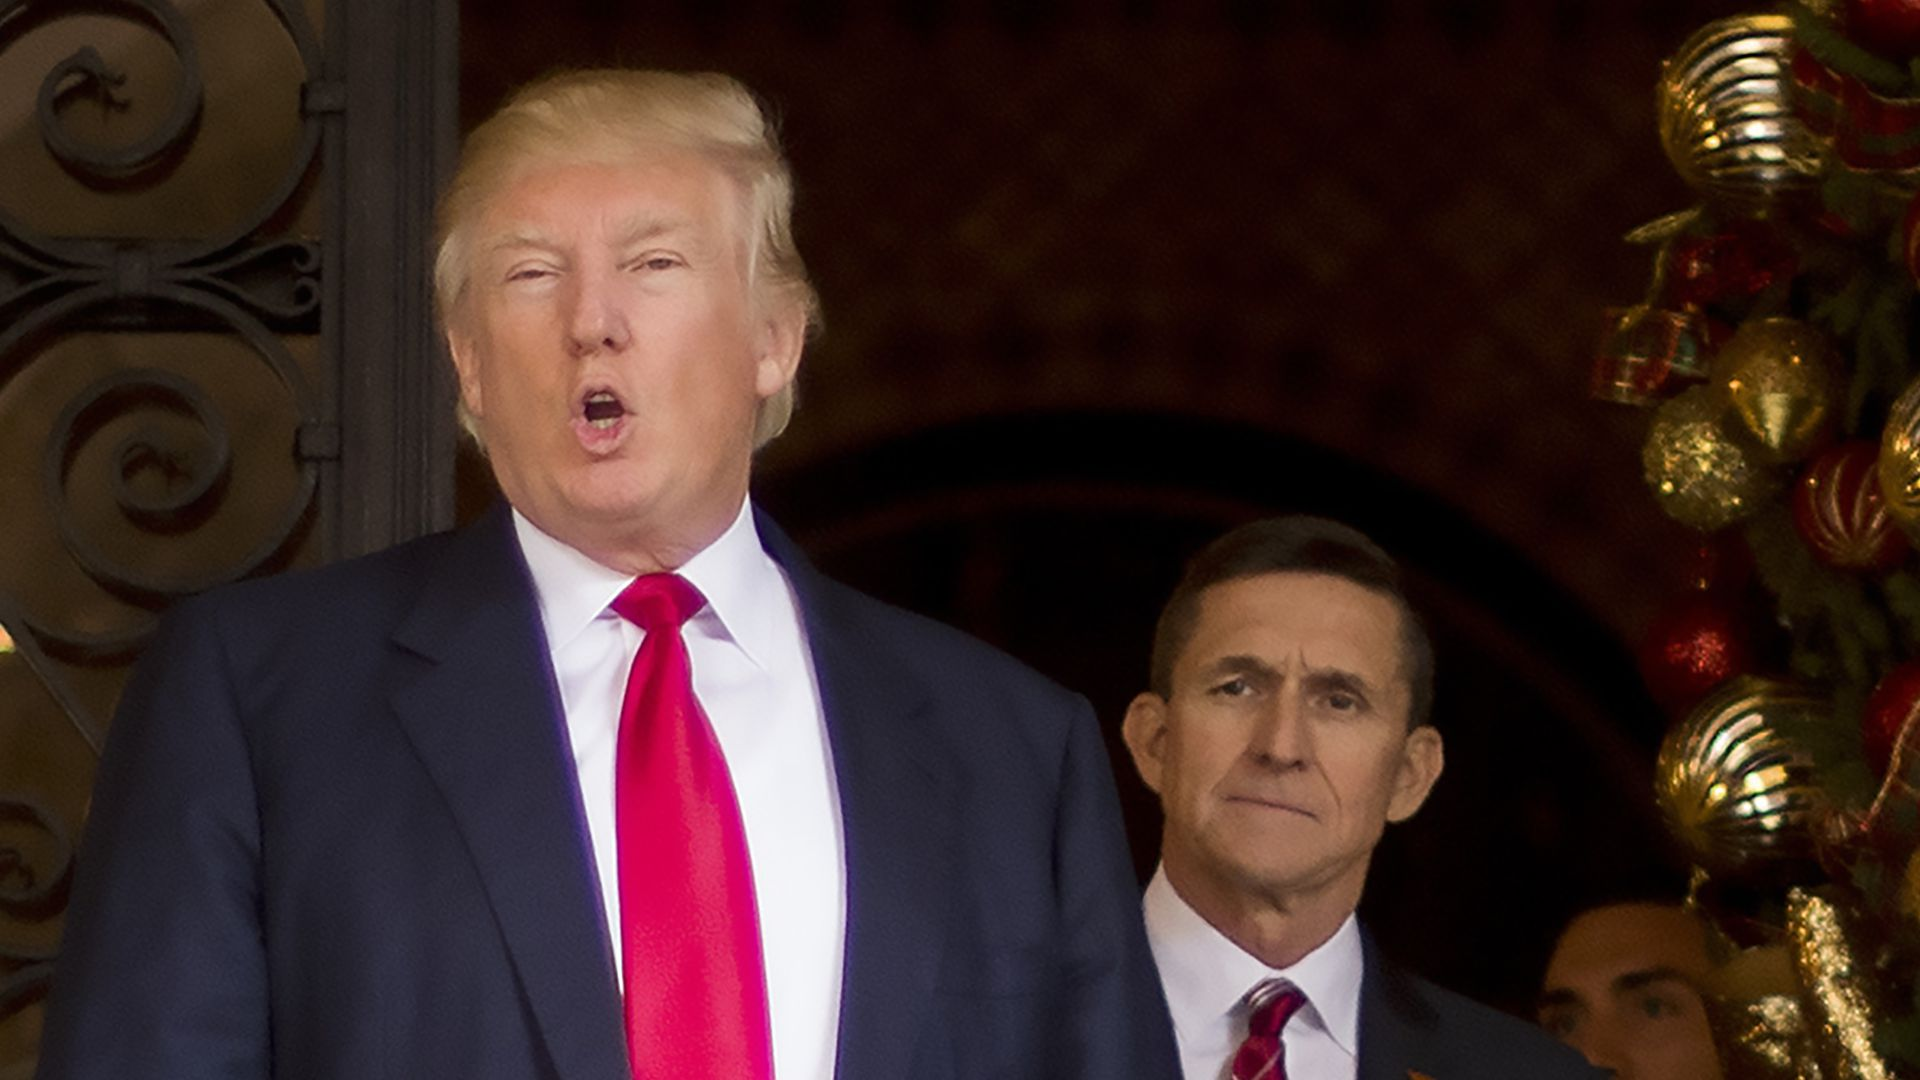 President Trump with Michael Flynn